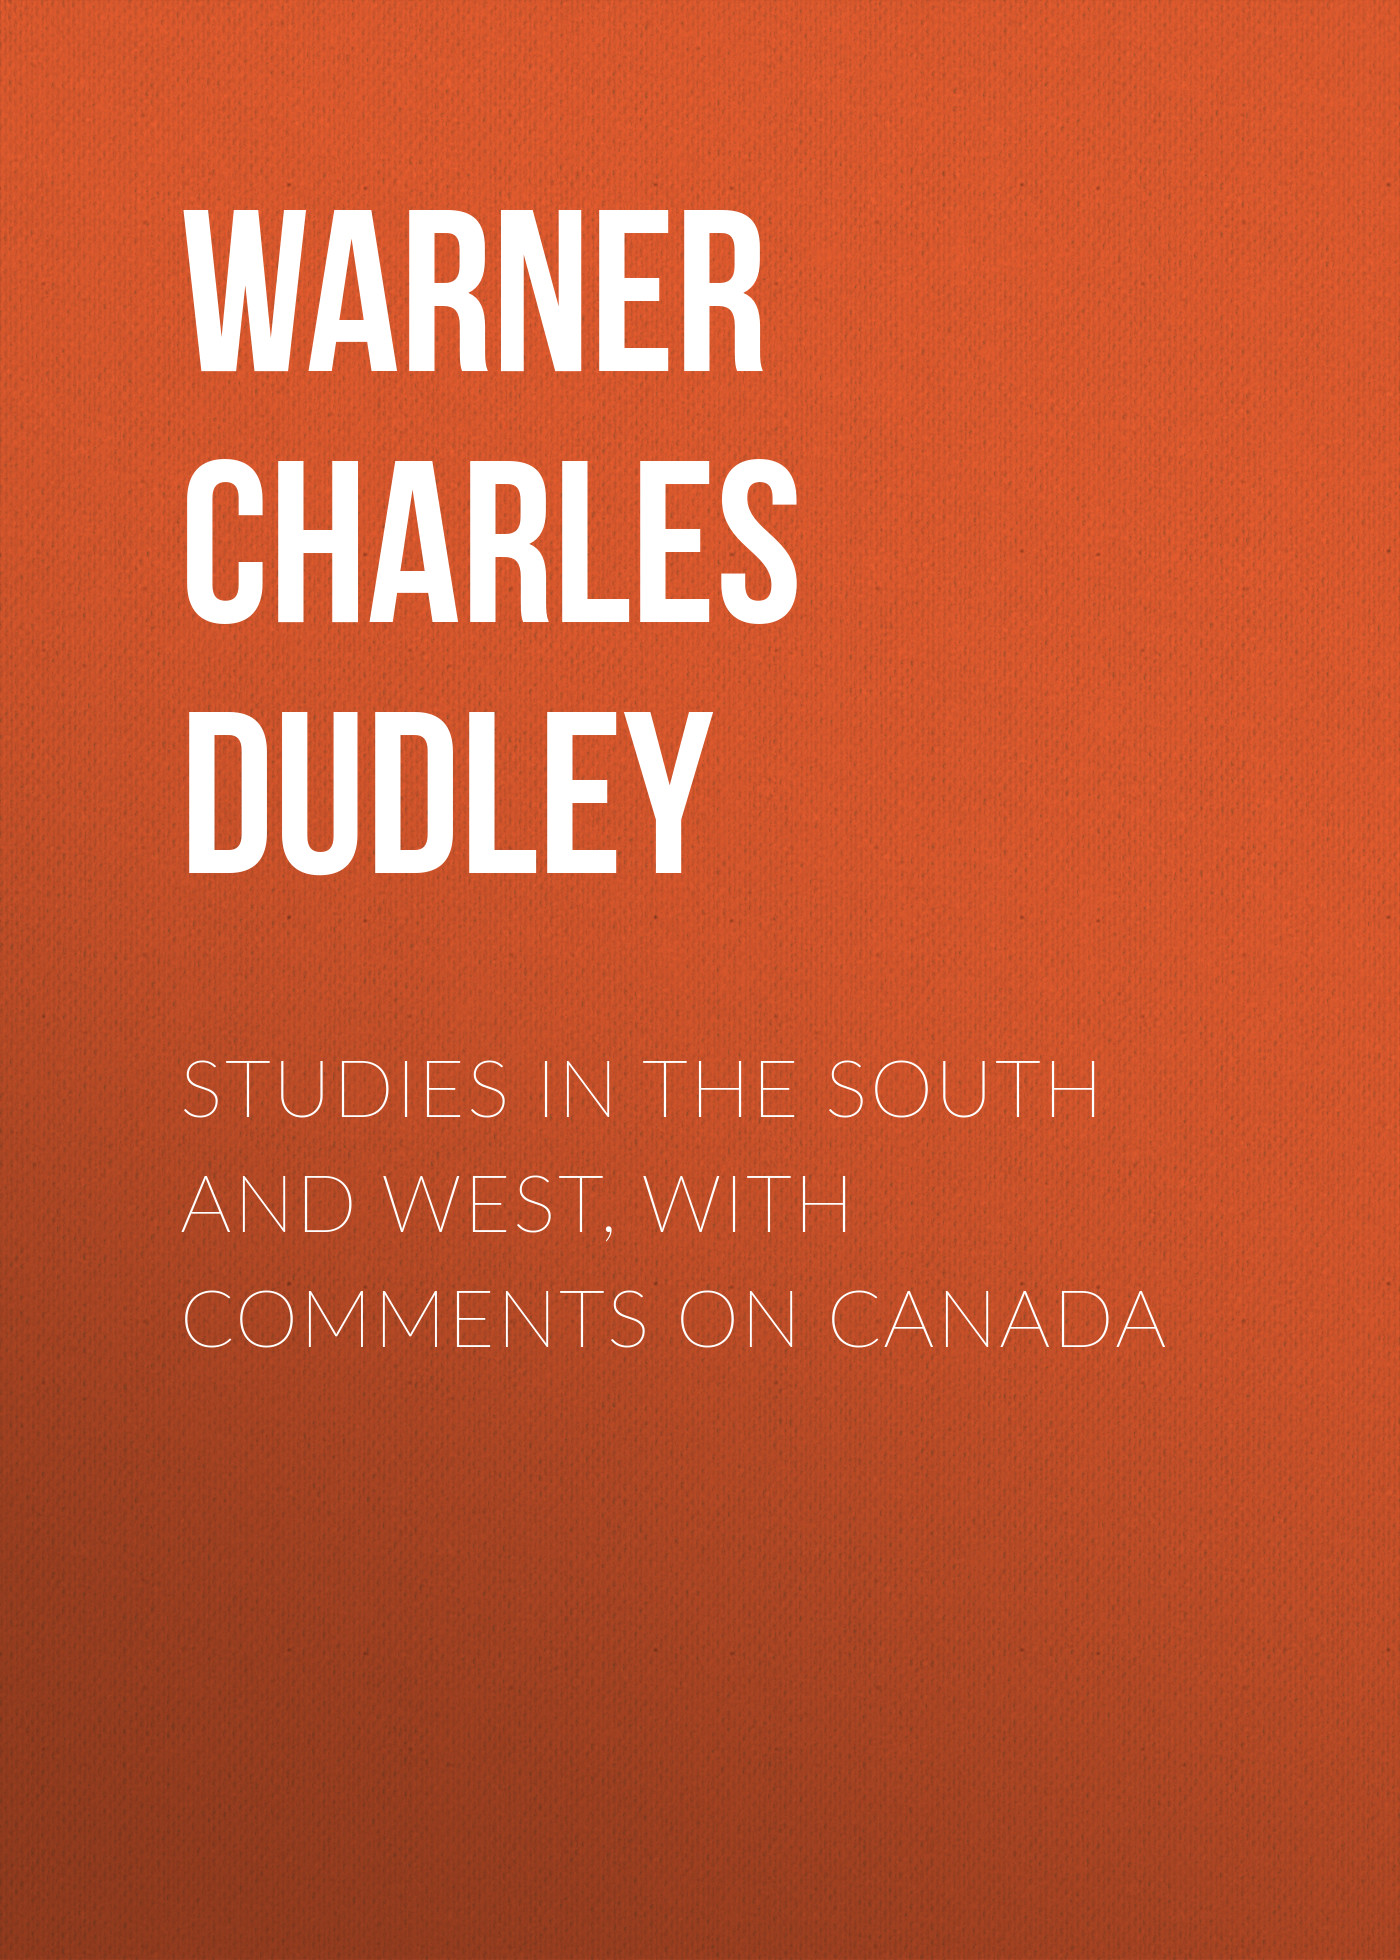 Studies in The South and West, With Comments on Canada